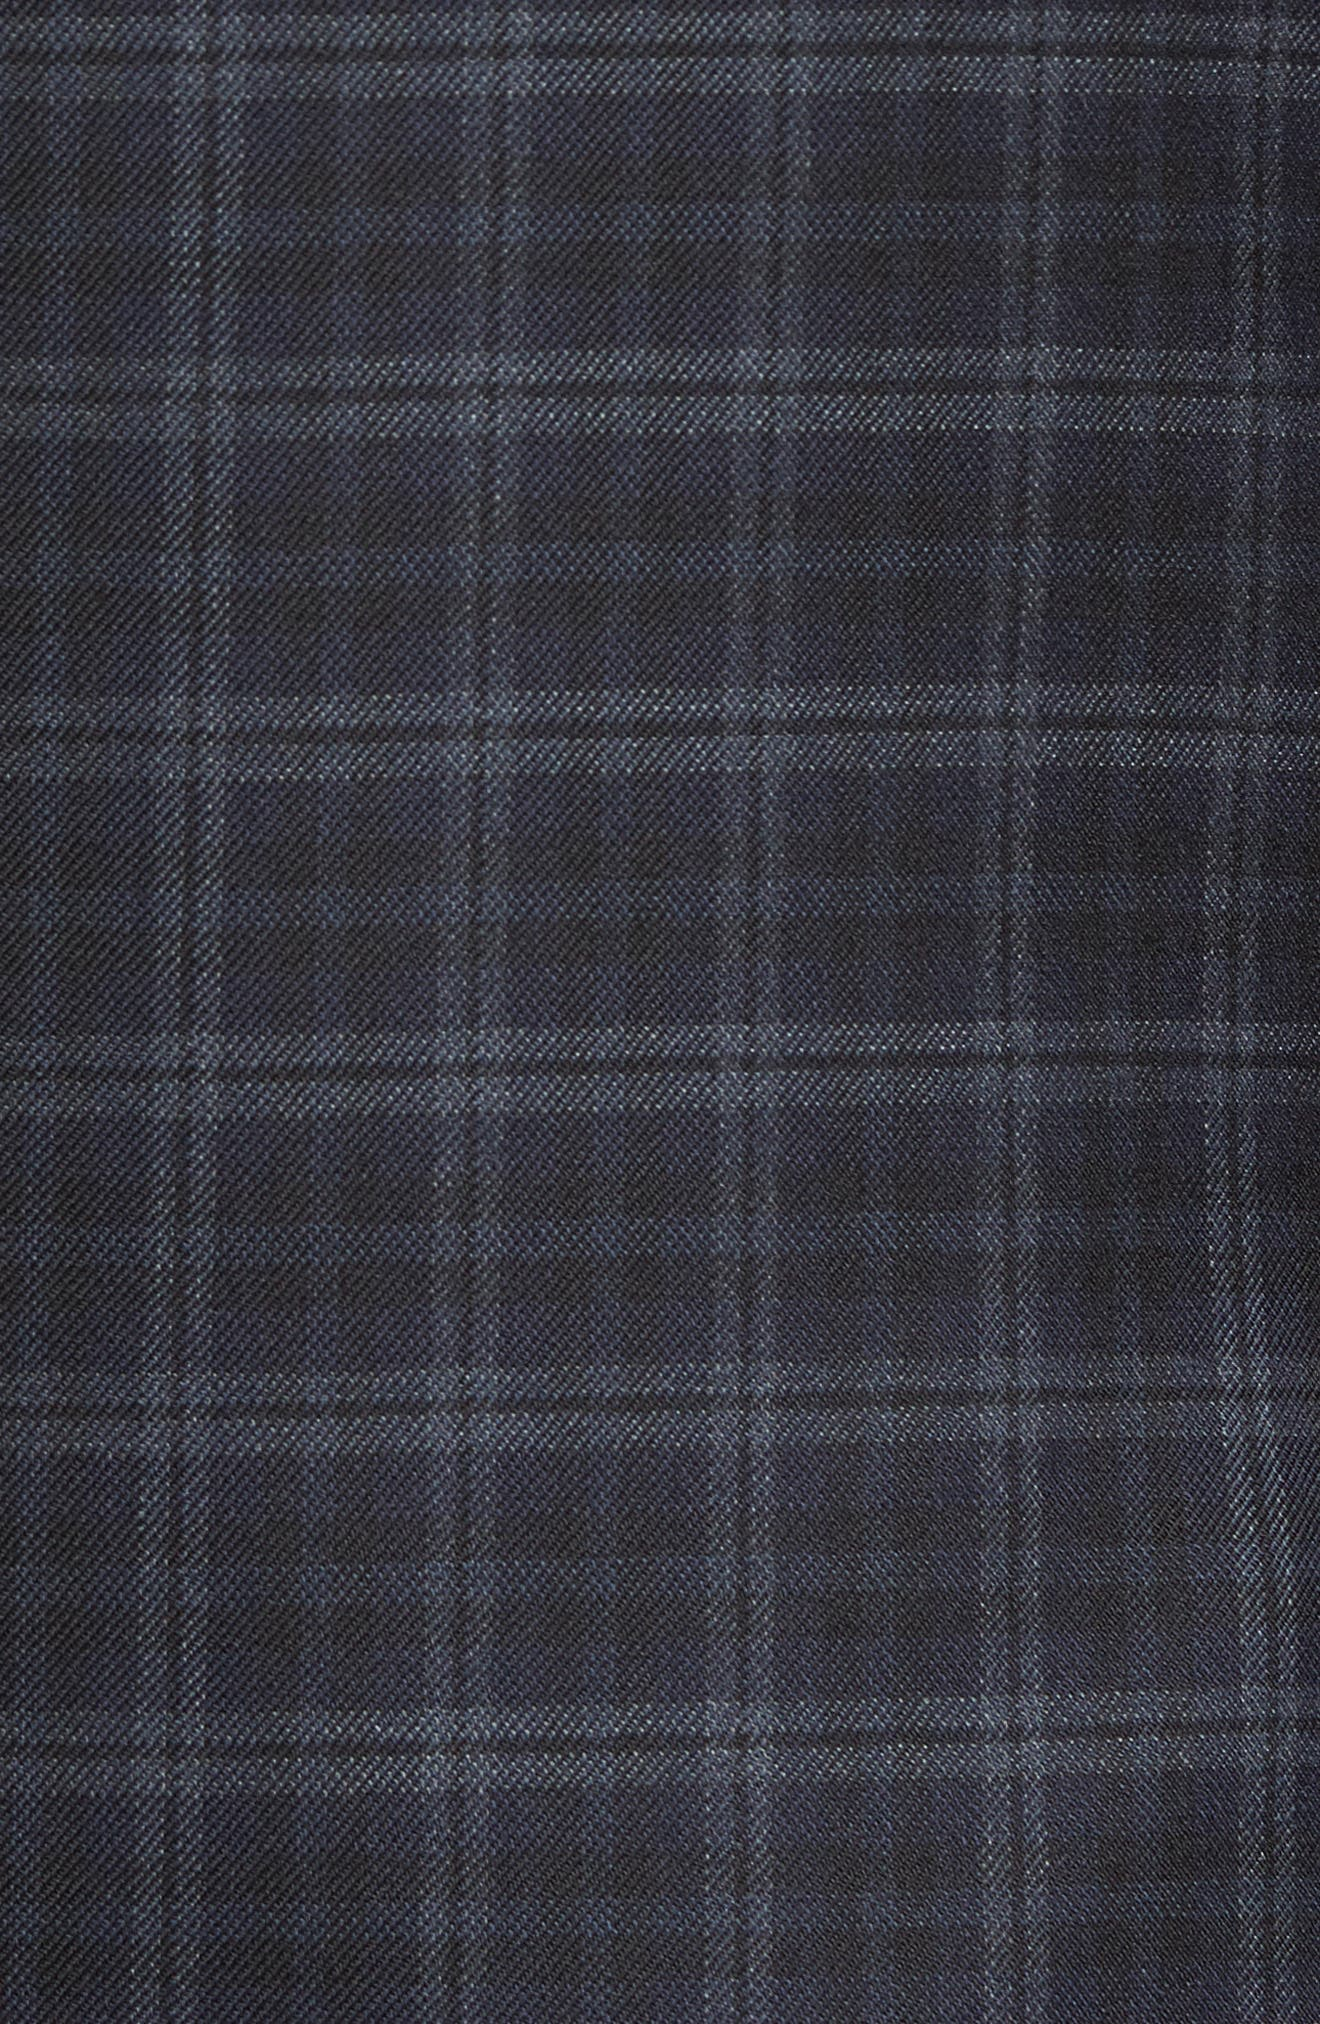 Classic Fit Plaid Wool Sport Coat,                             Alternate thumbnail 5, color,                             422